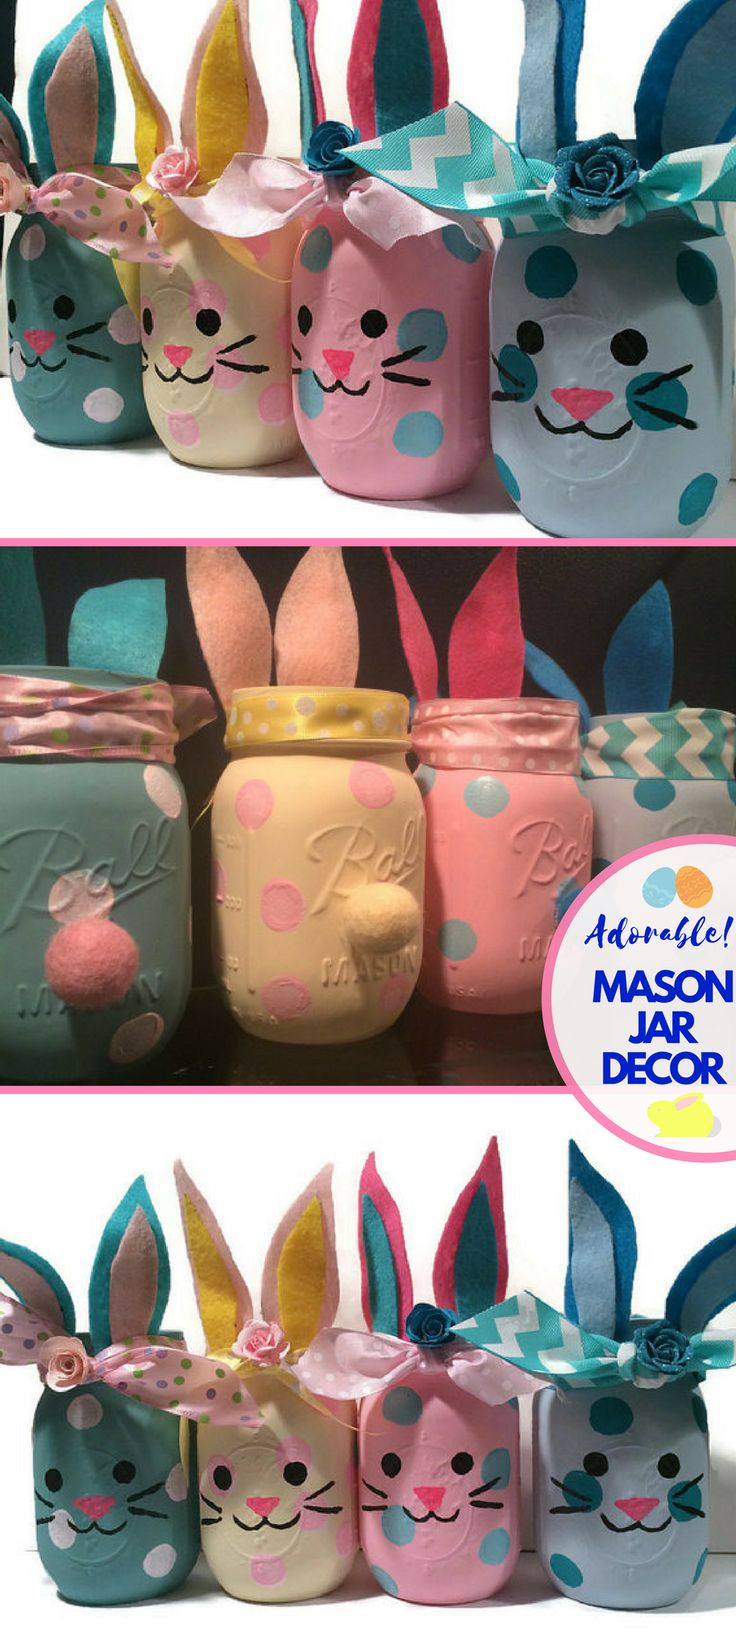 I absolutely love these adorable handpainted Easter Bunny Mason Jars.  The tails are so cute!  These would make great additions to our Easter Home Decor this year. Bunny mason jars, bunny jars, bunny home decor, bunny nursery decor, bunny baby shower decoration, bunny lover gift, bunny vase, Easter. #Ad #easter #masonjar #masonjarcrafts #DIY #Etsy #spring